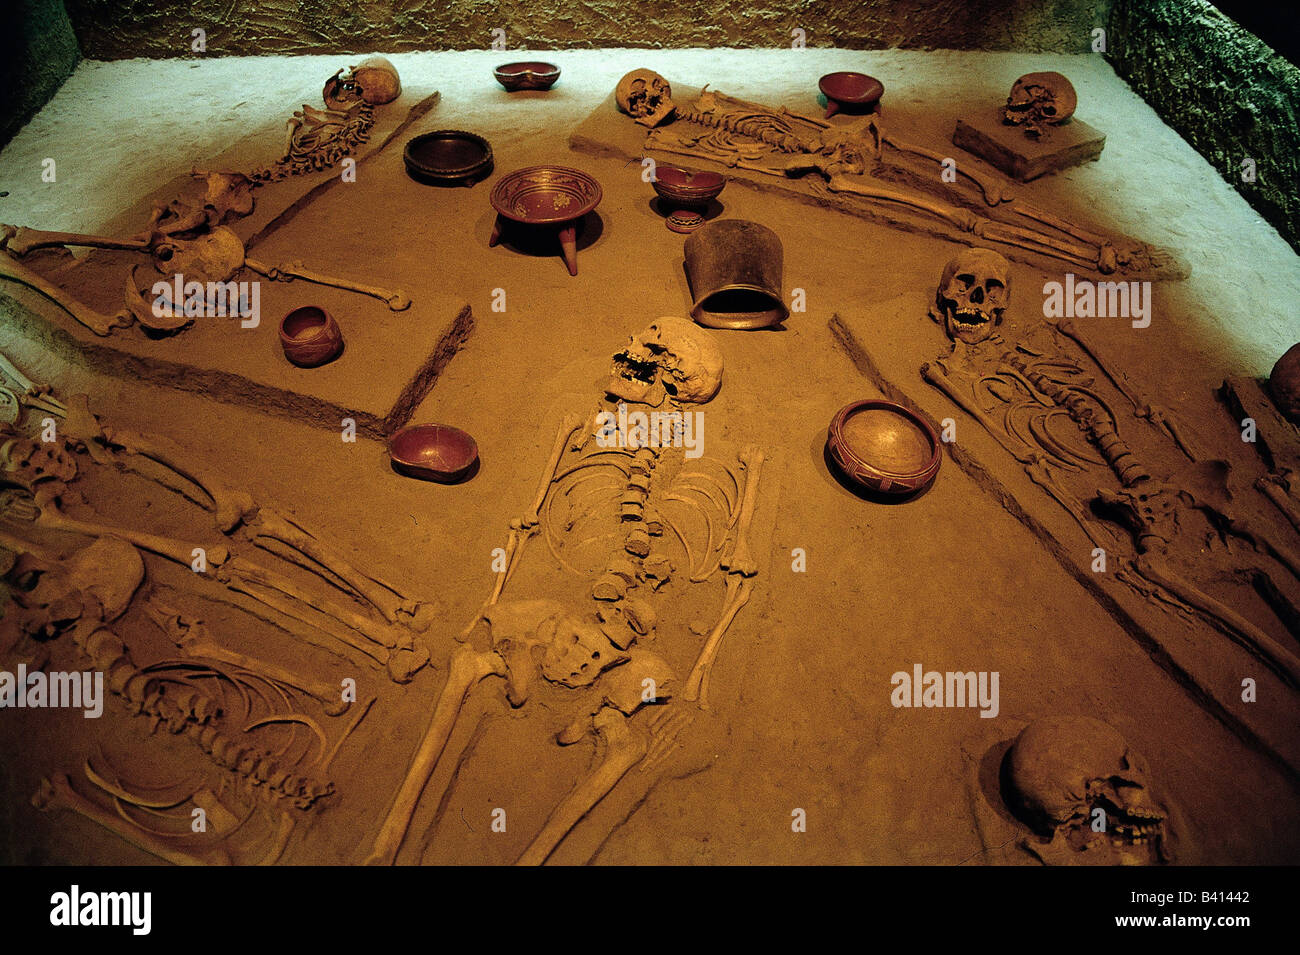 geography / travel, Mexico, Mexico City, original reconstruction of a grave find with burial objects, anthropological - Stock Image